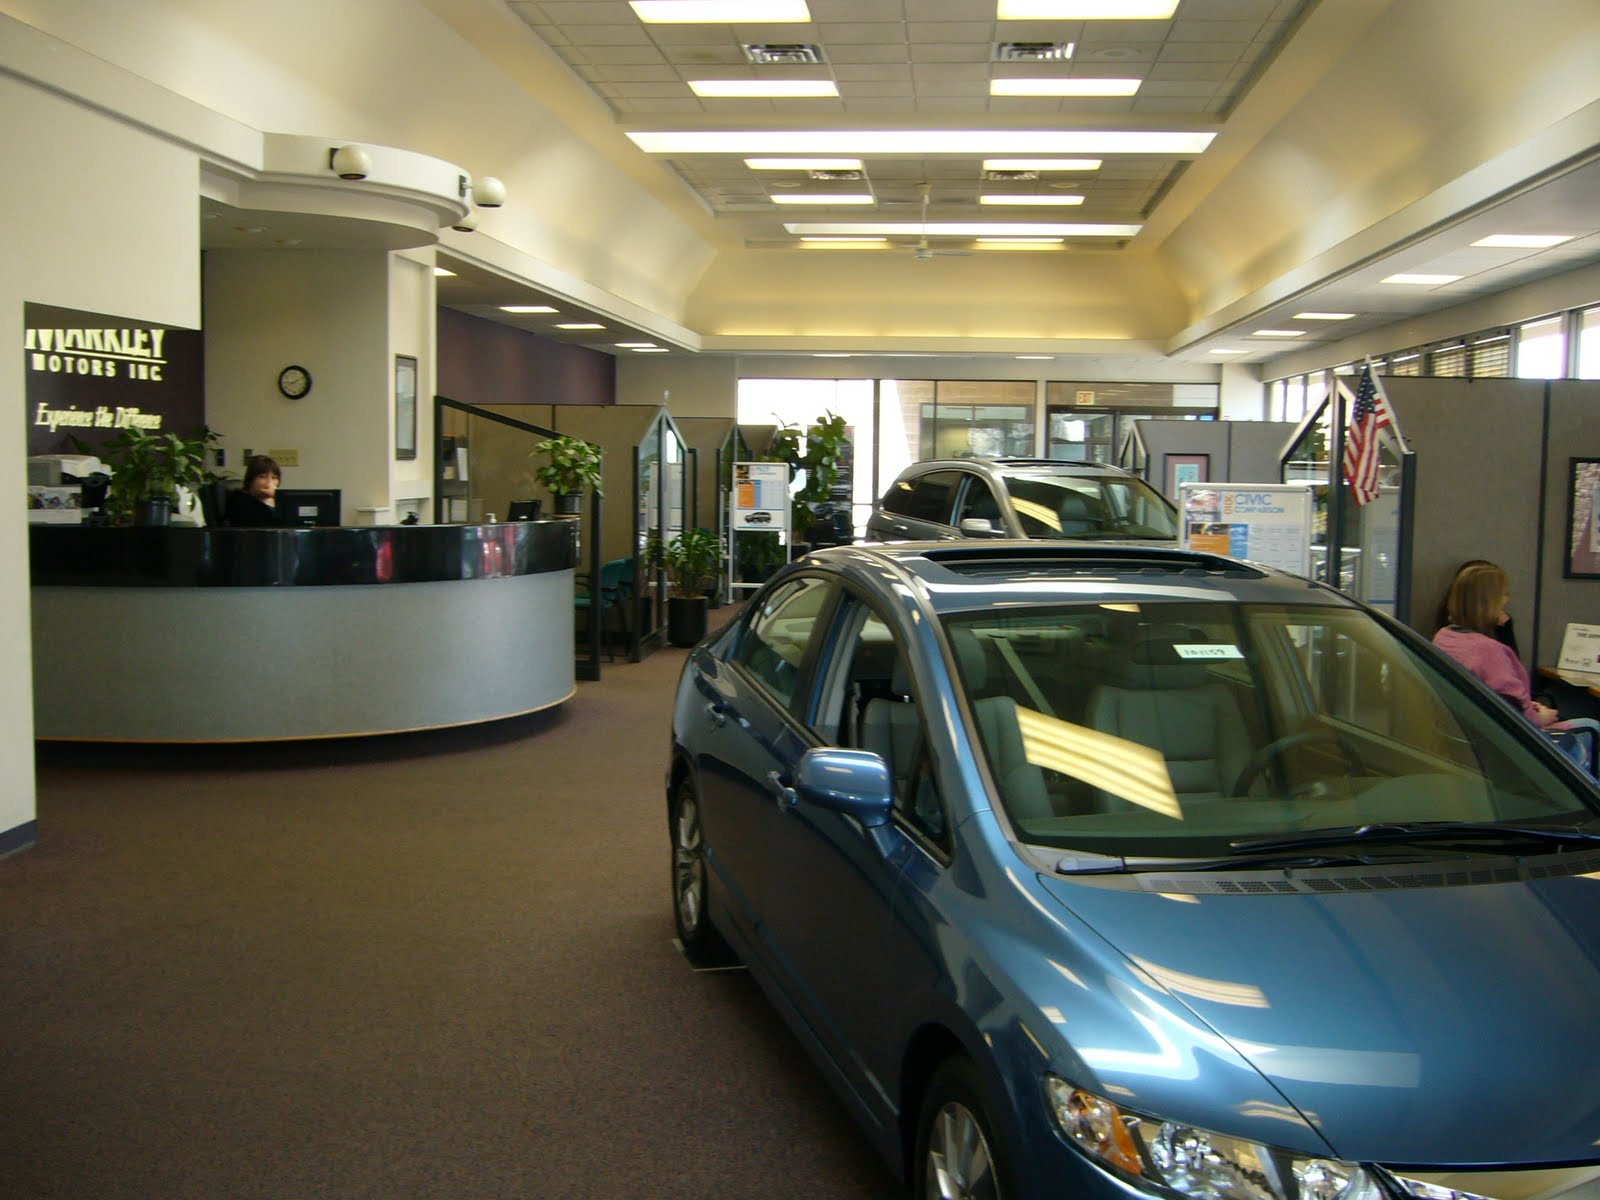 Markley motors honda parts for Markley motors honda fort collins